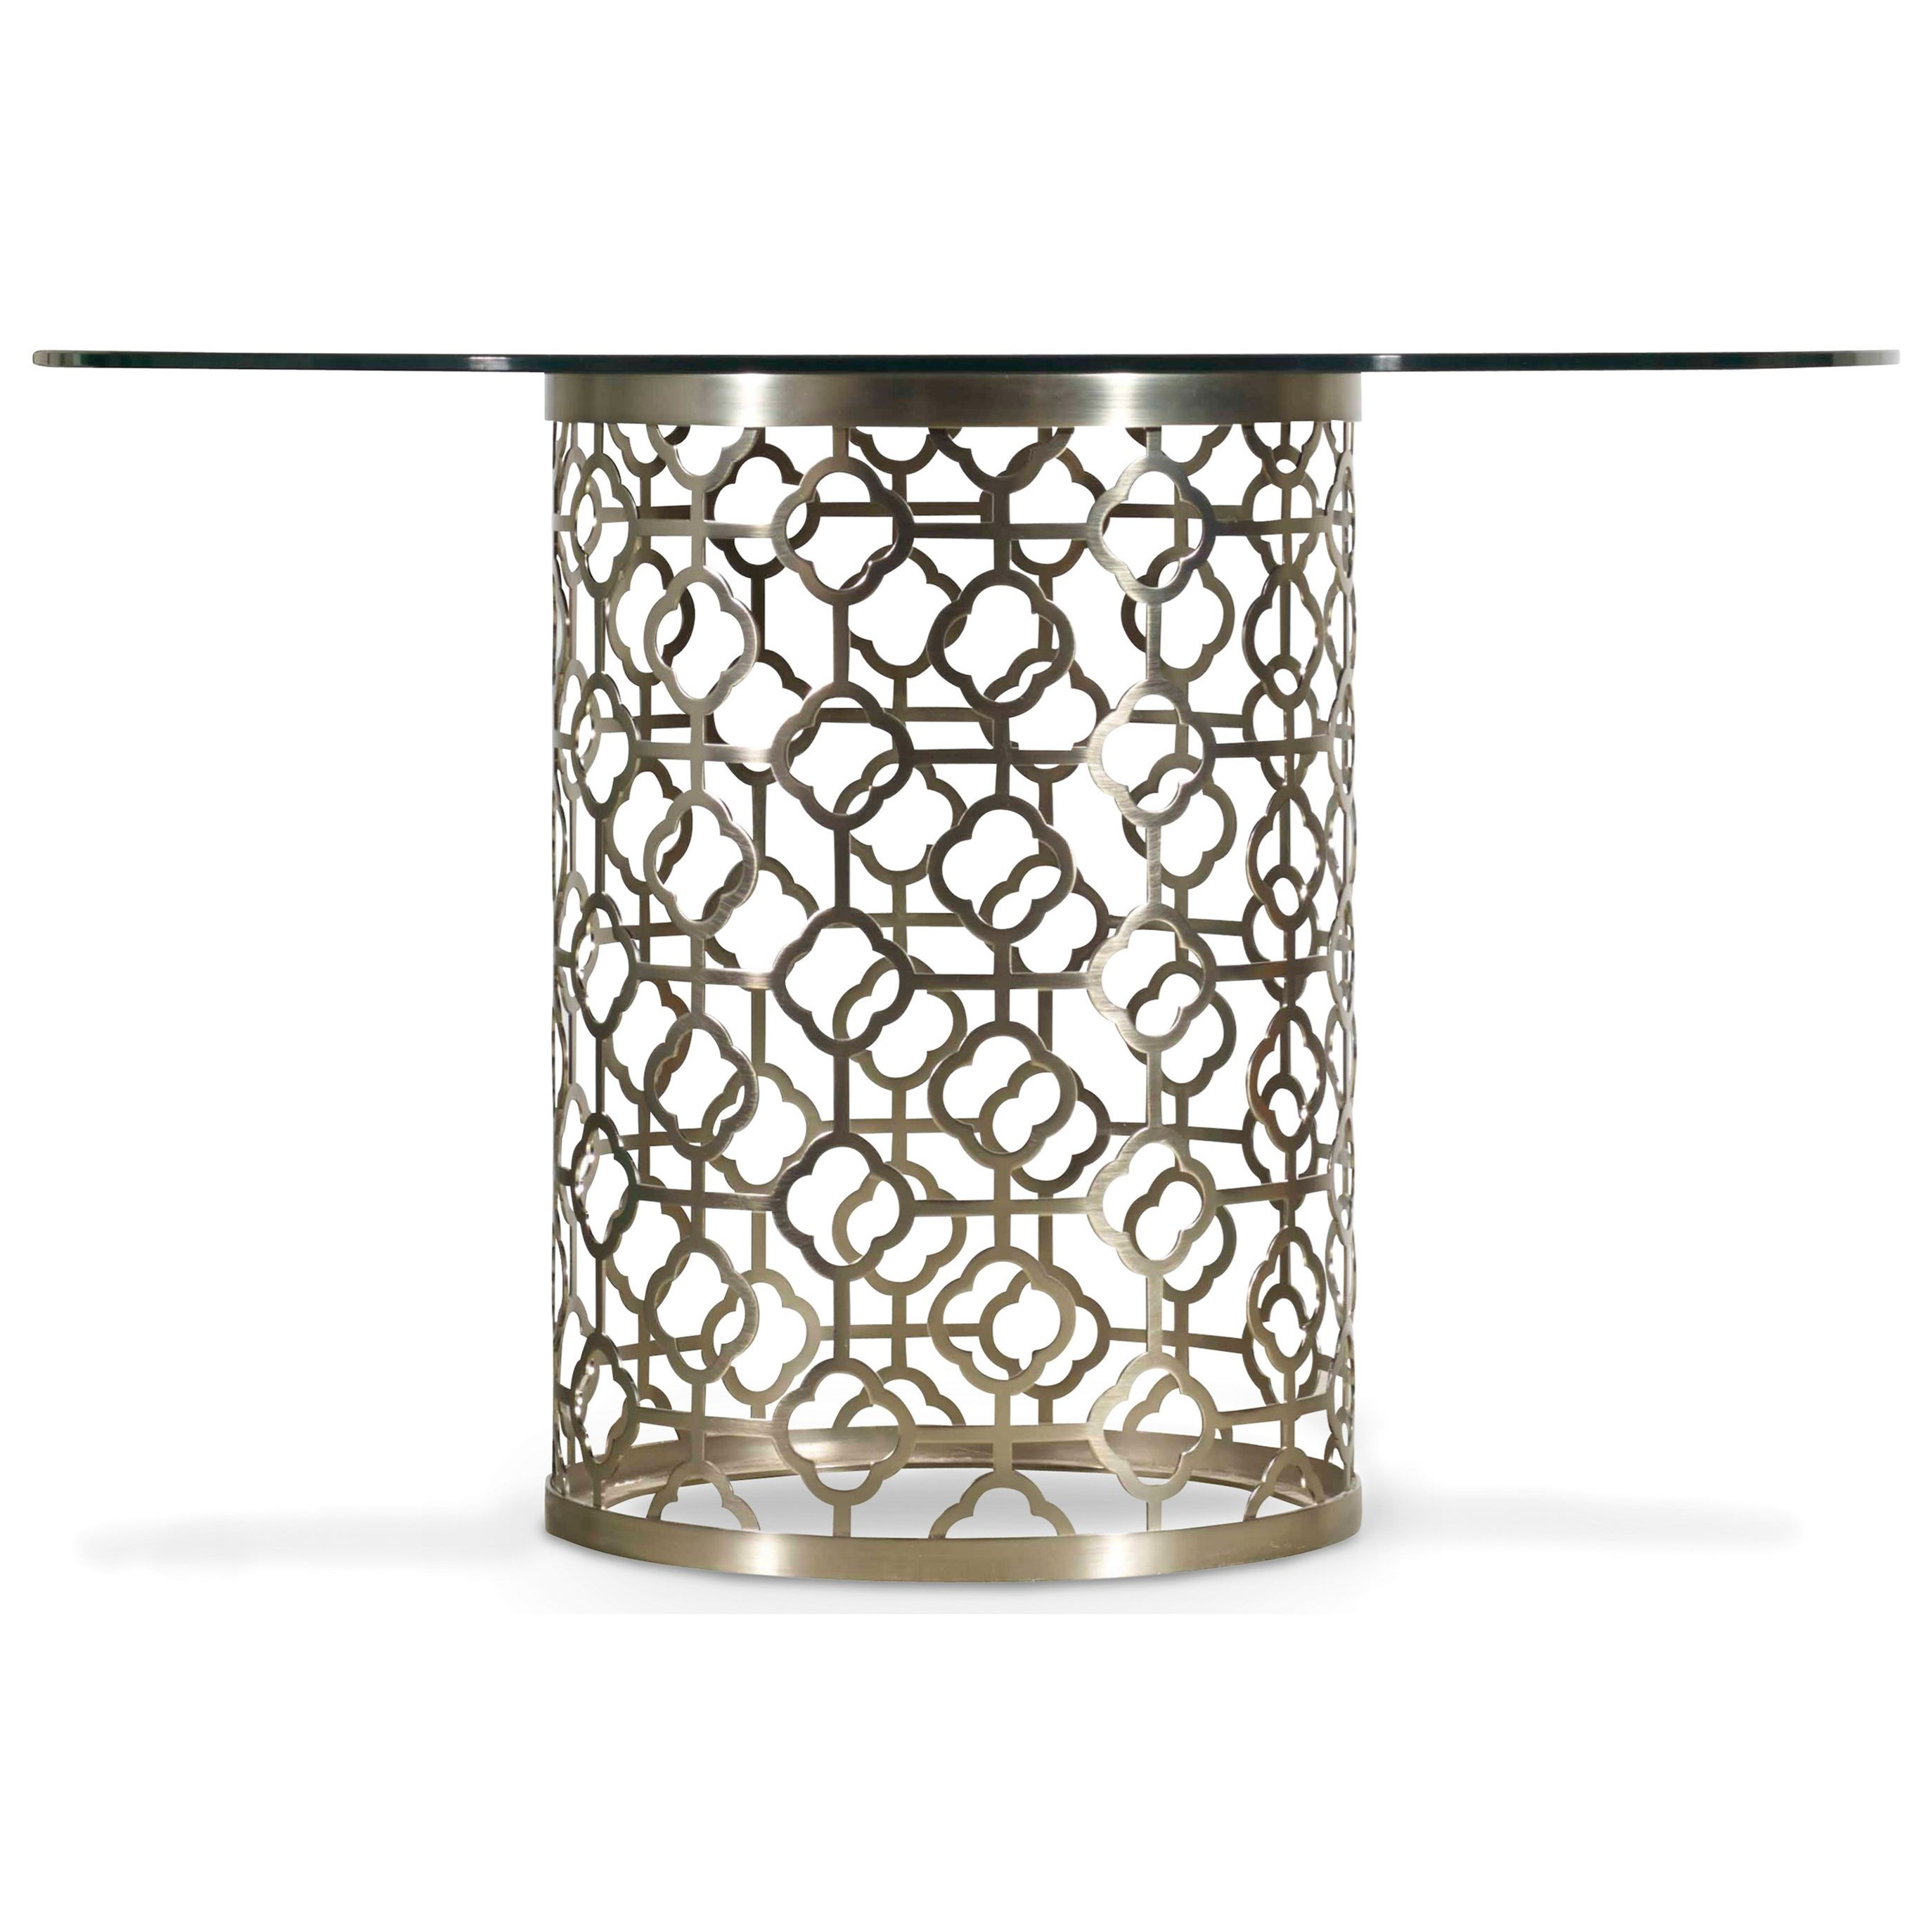 Hooker Furniture Skyline Round Glass Top Dining Table With Plated Metal Base Dunk Bright